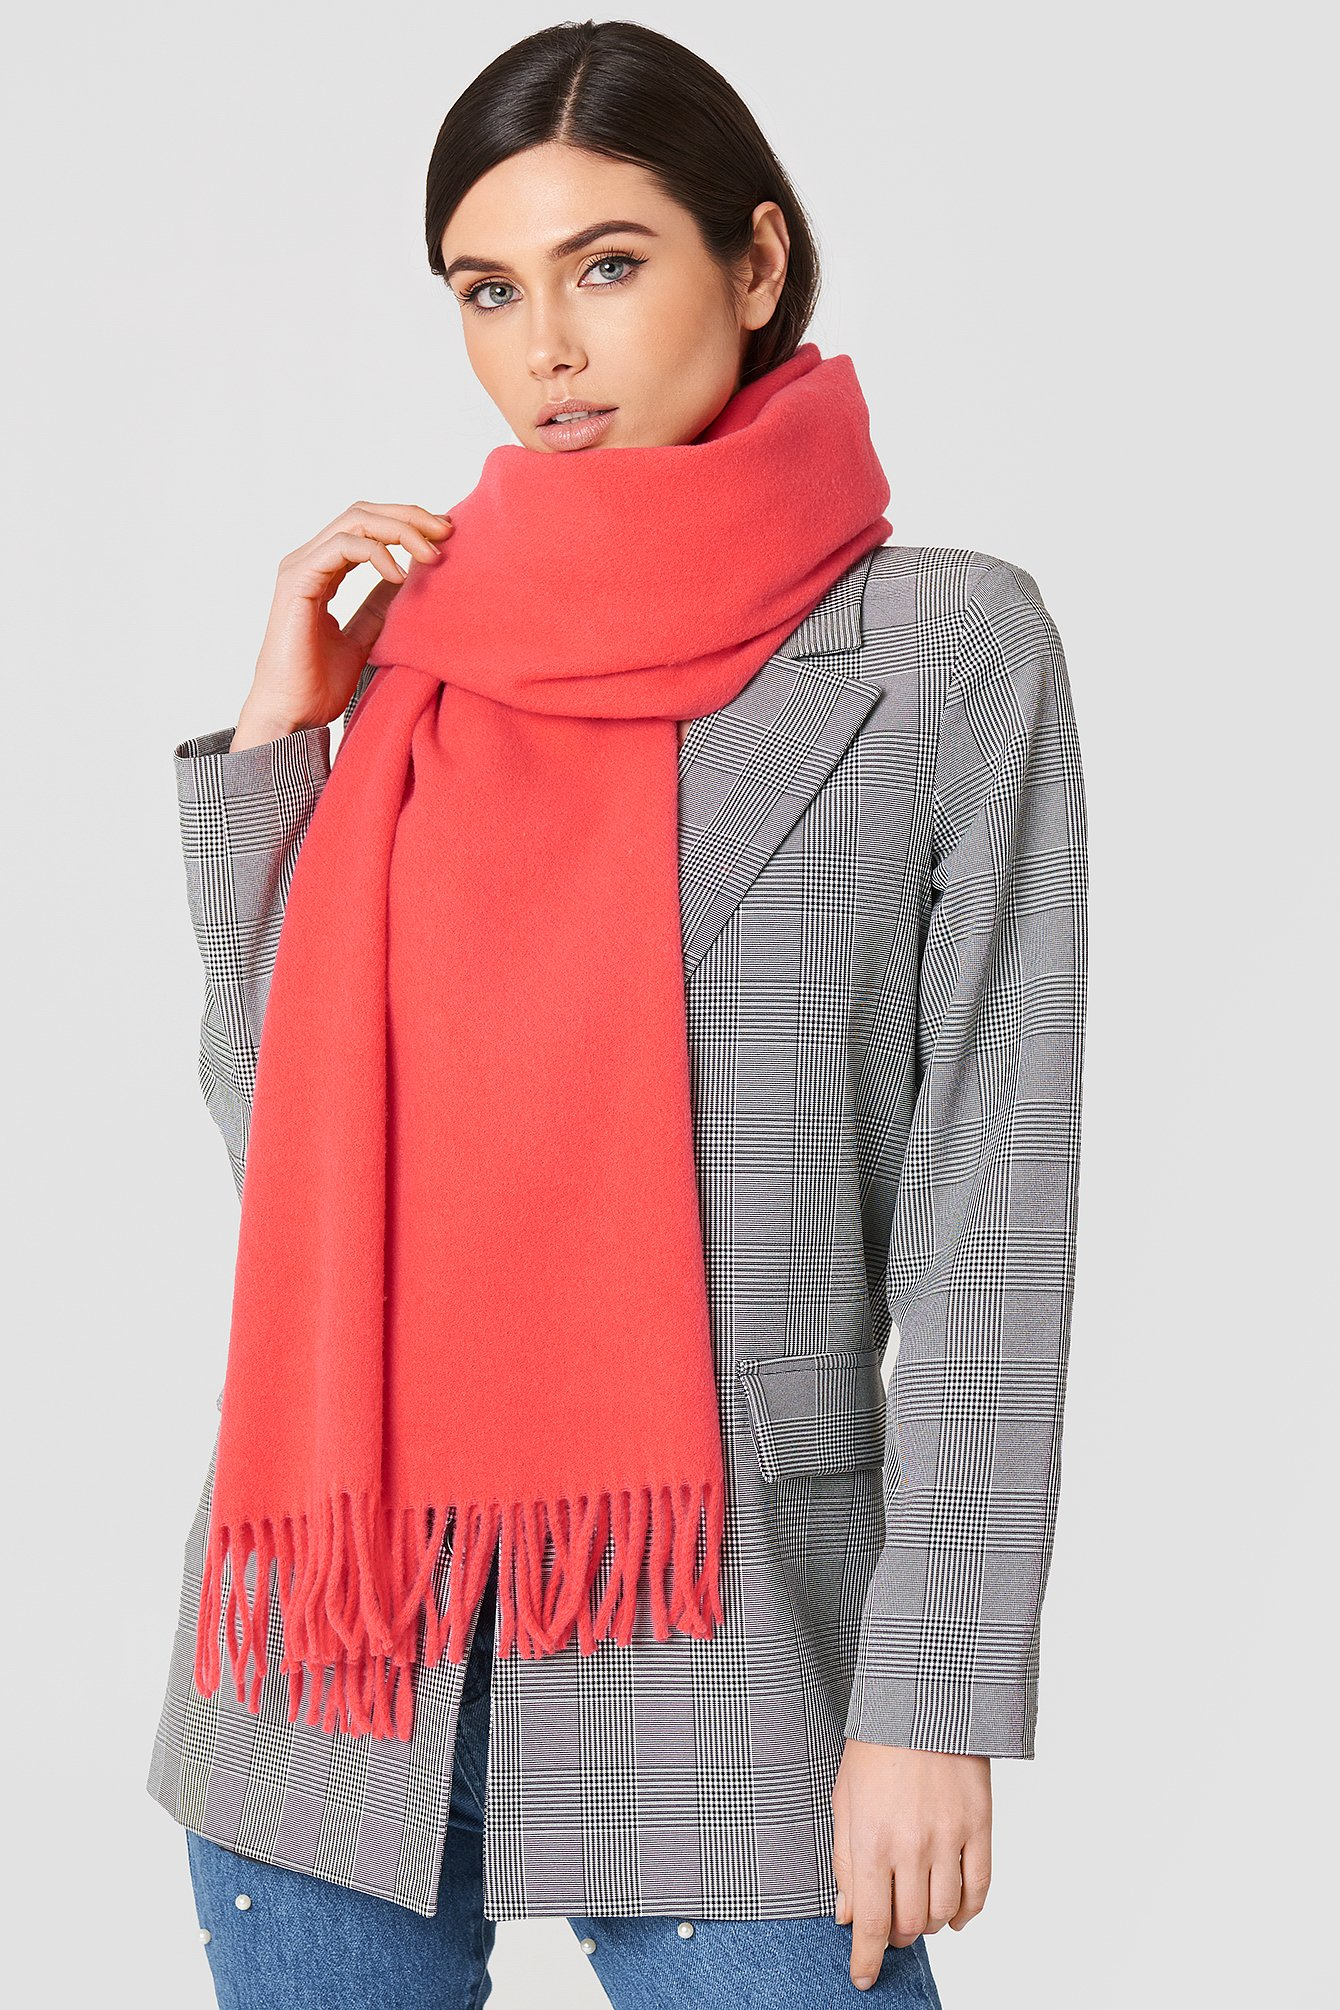 HARMONY SCARF - RED